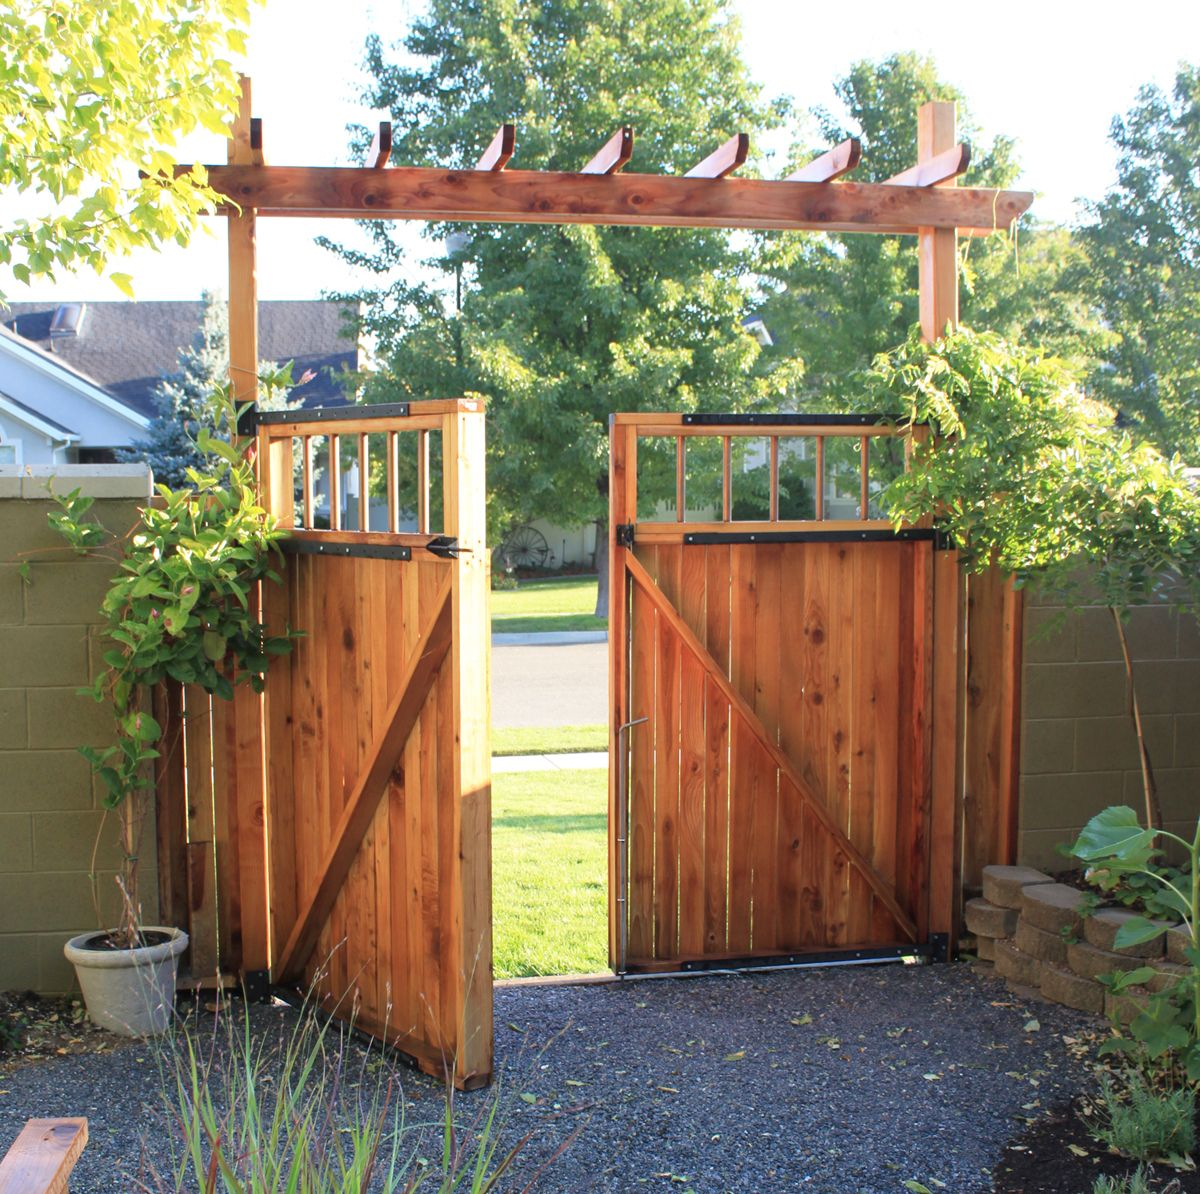 Arbor Over Gate Ideas: Garden Gate Ideas In 2019